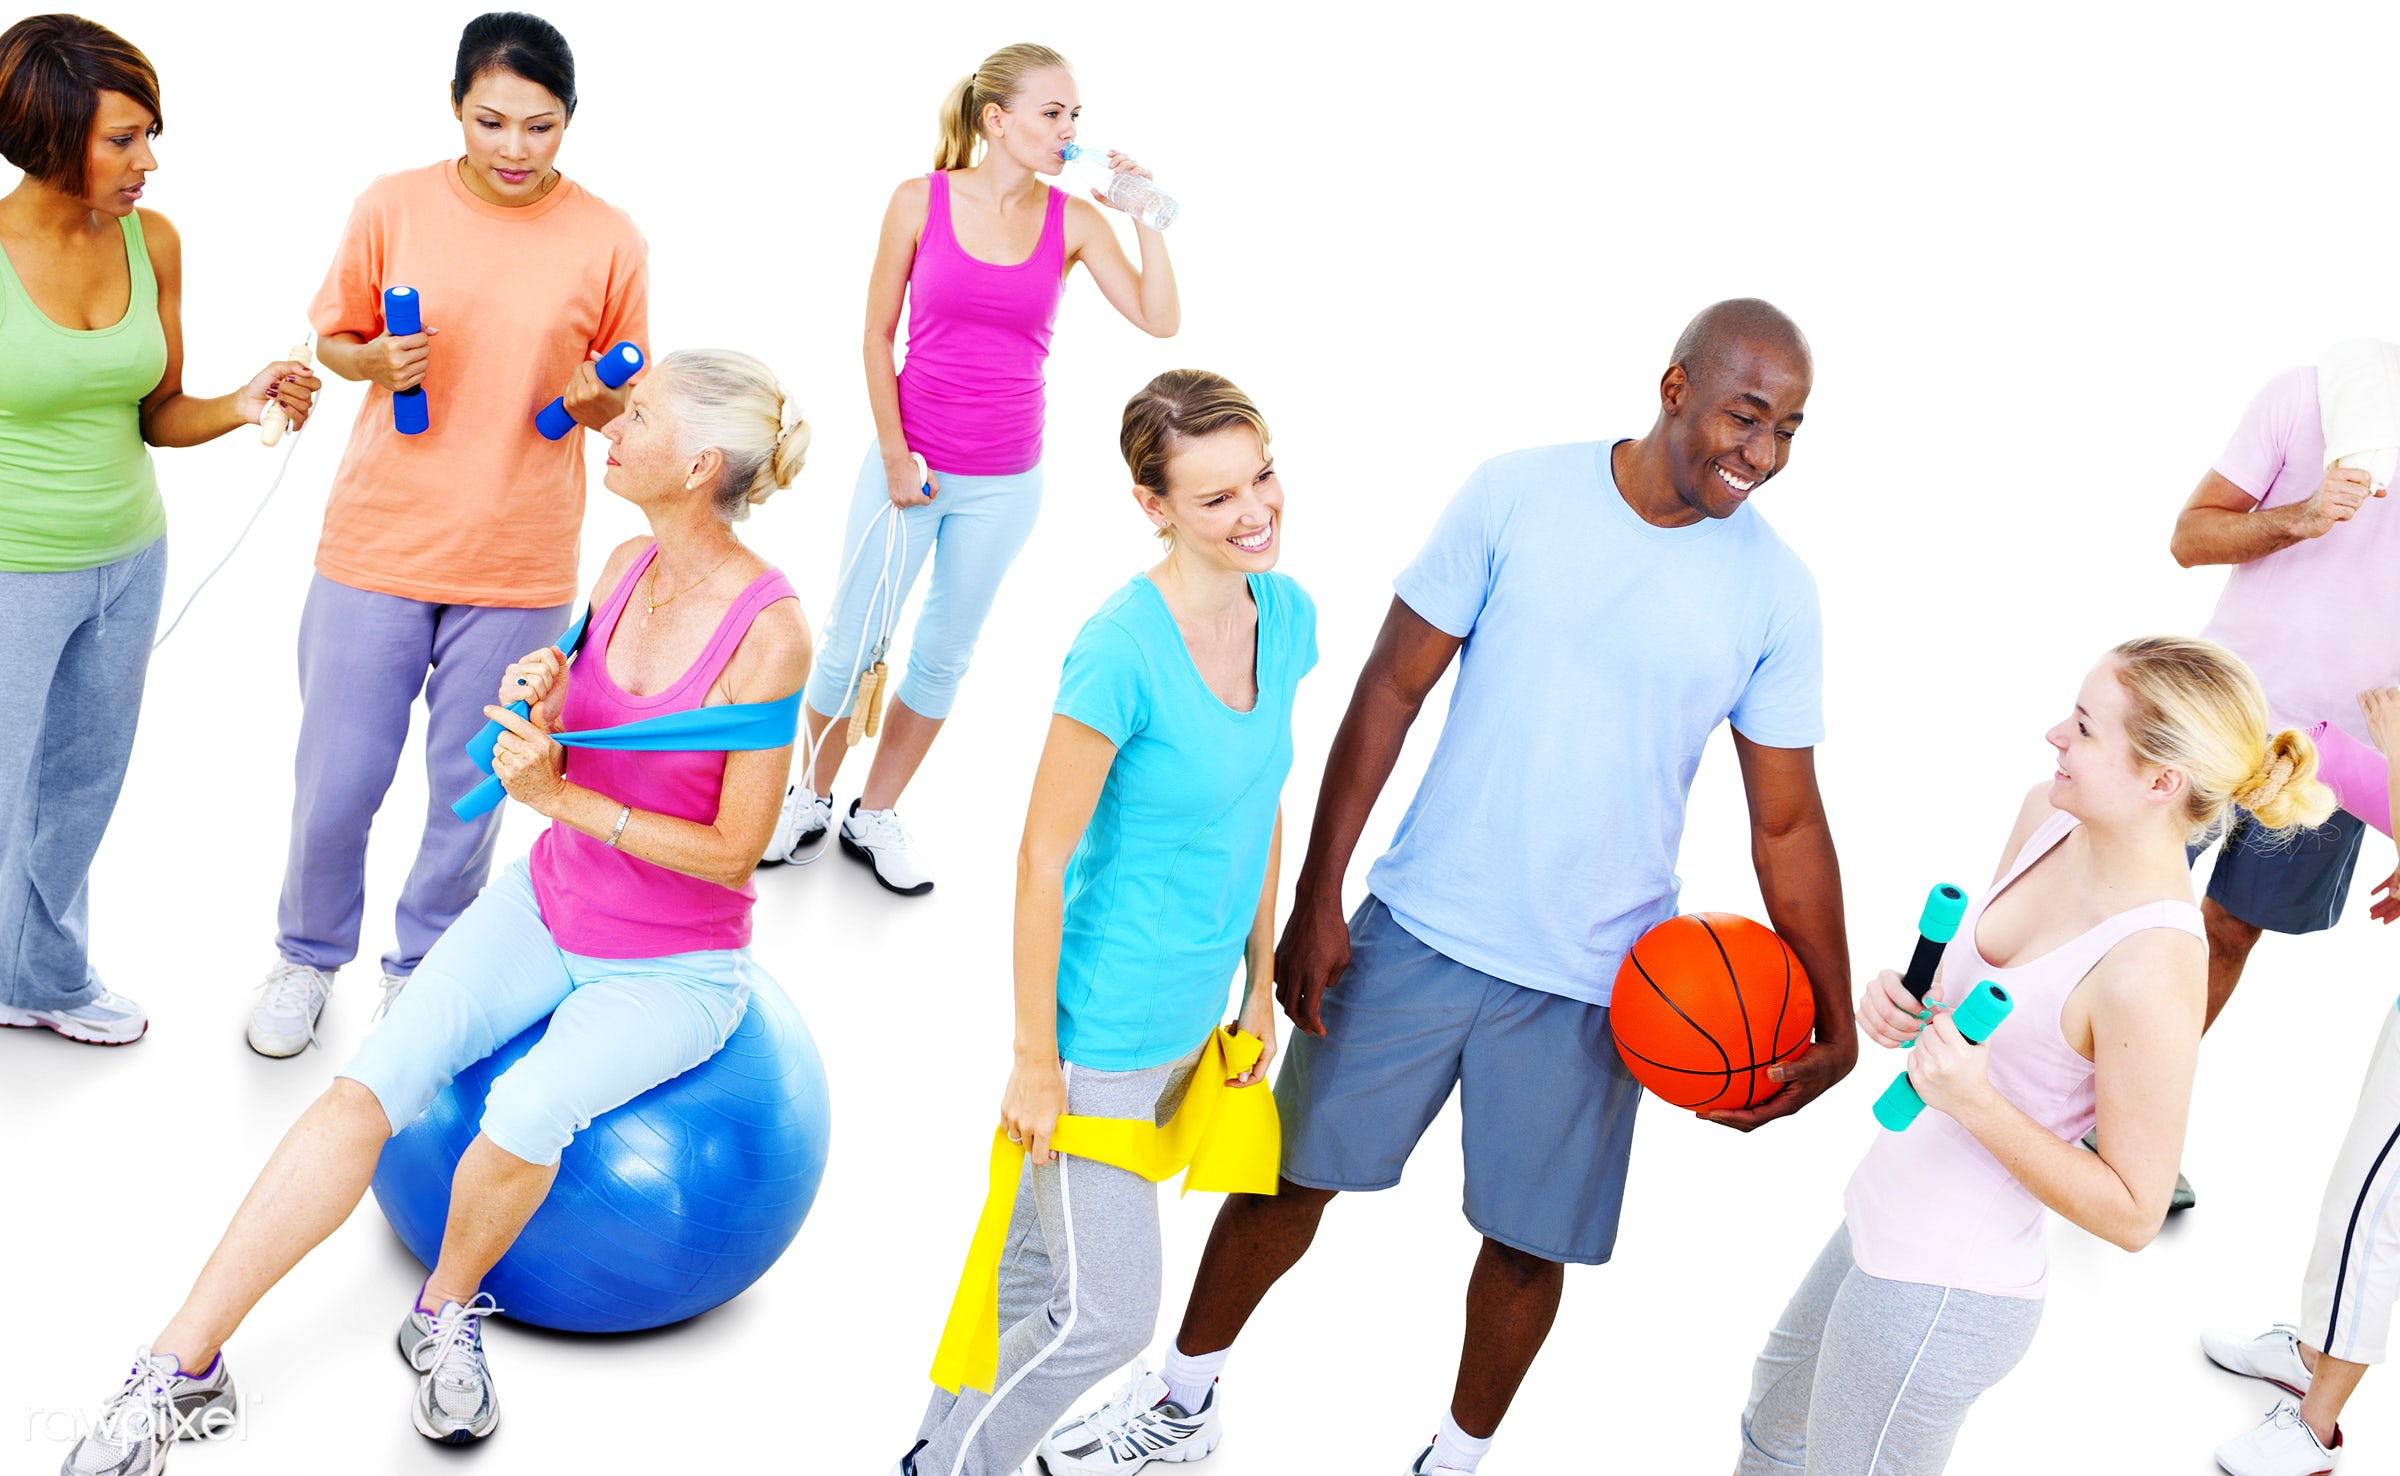 lifestyles, activity, adult, african descent, asian ethnicity, balance, basketball, body care, break, cheerful, classroom,...